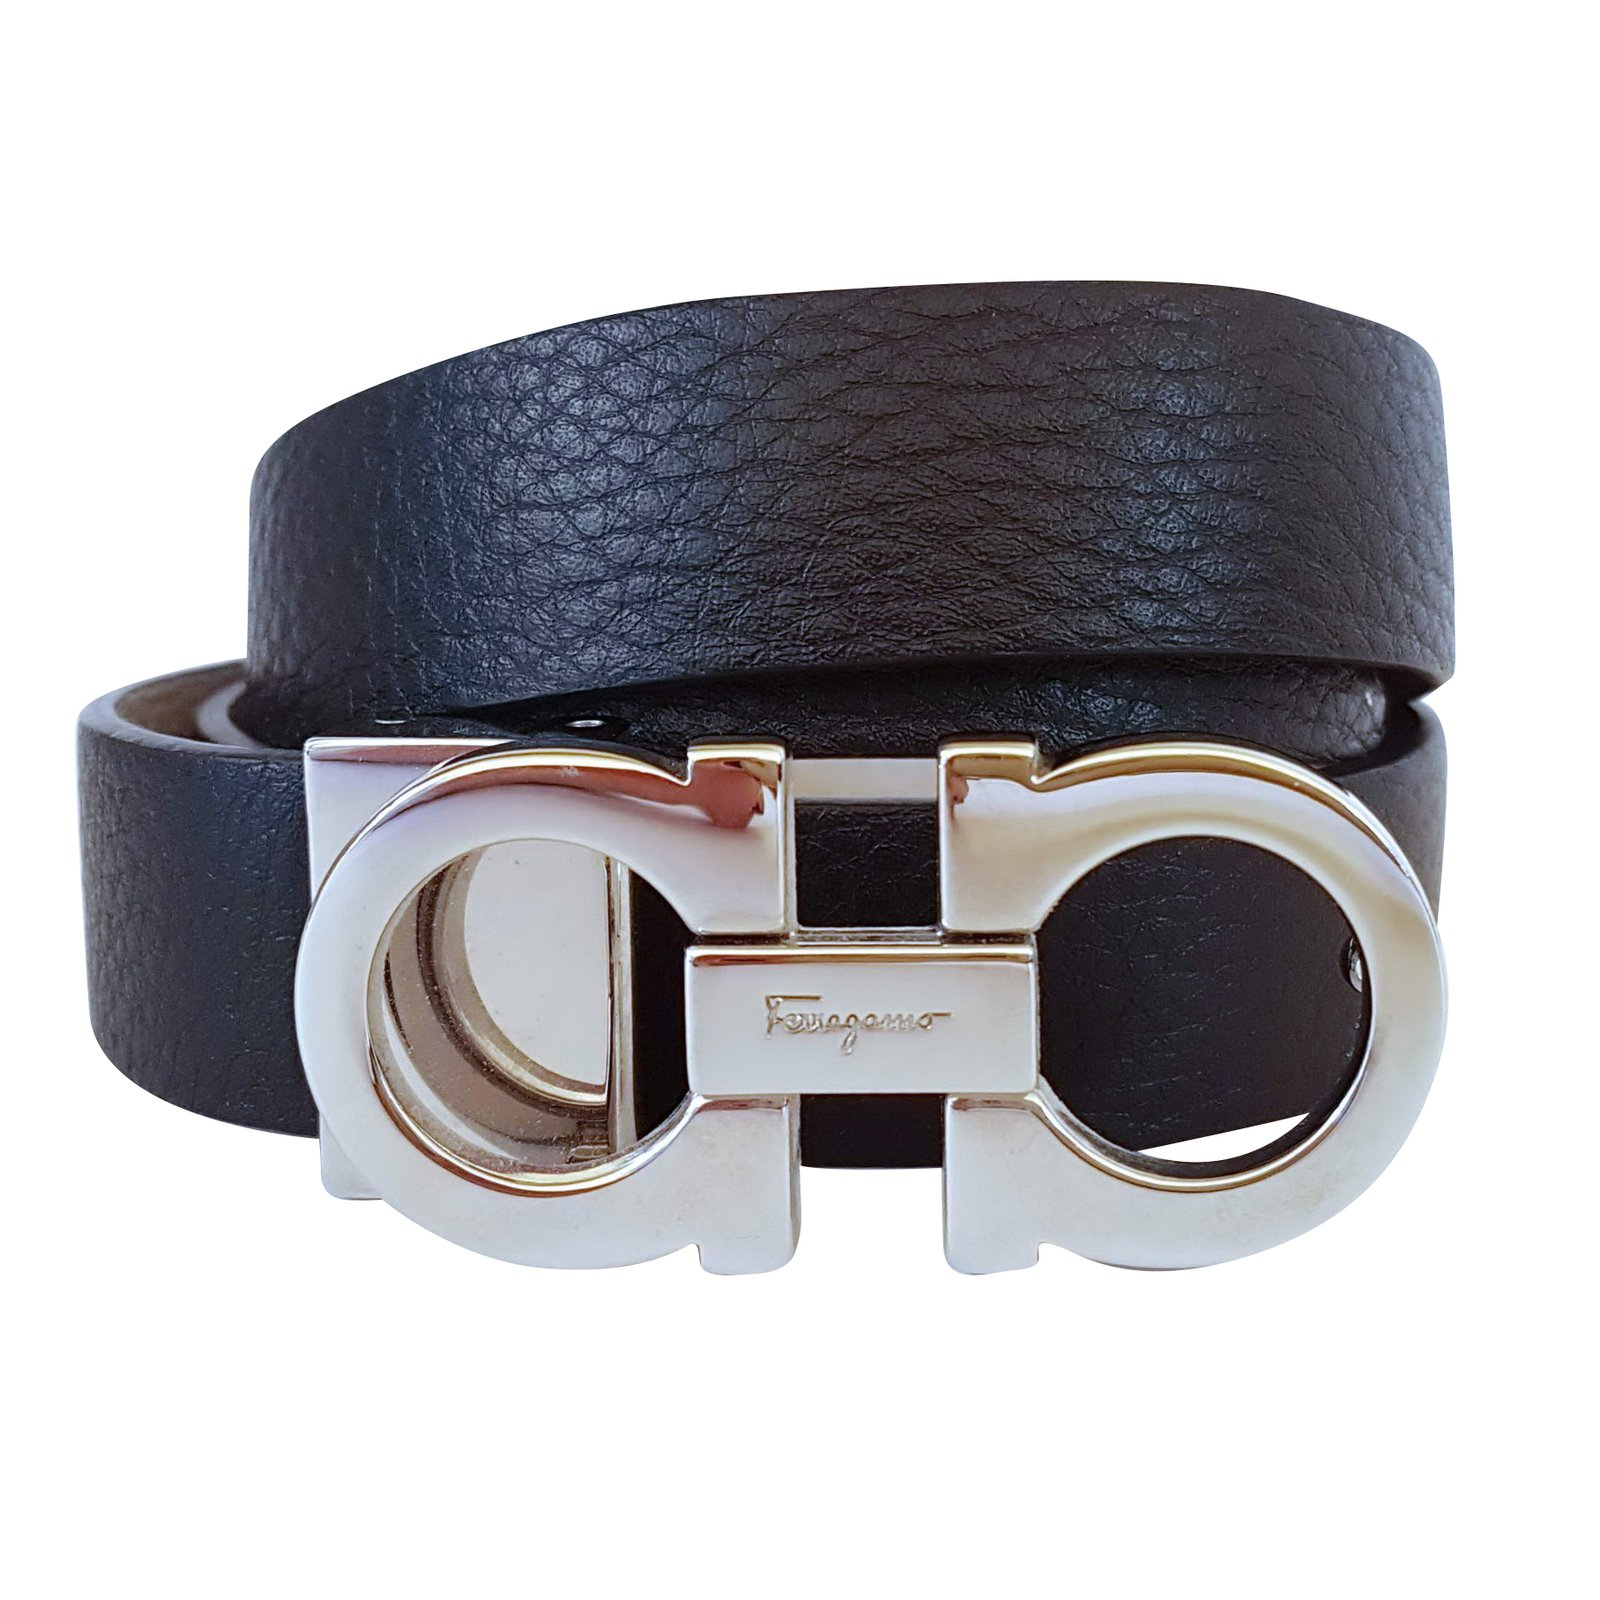 Salvatore Ferragamo Reversible Double Gancio Belt Belts ...